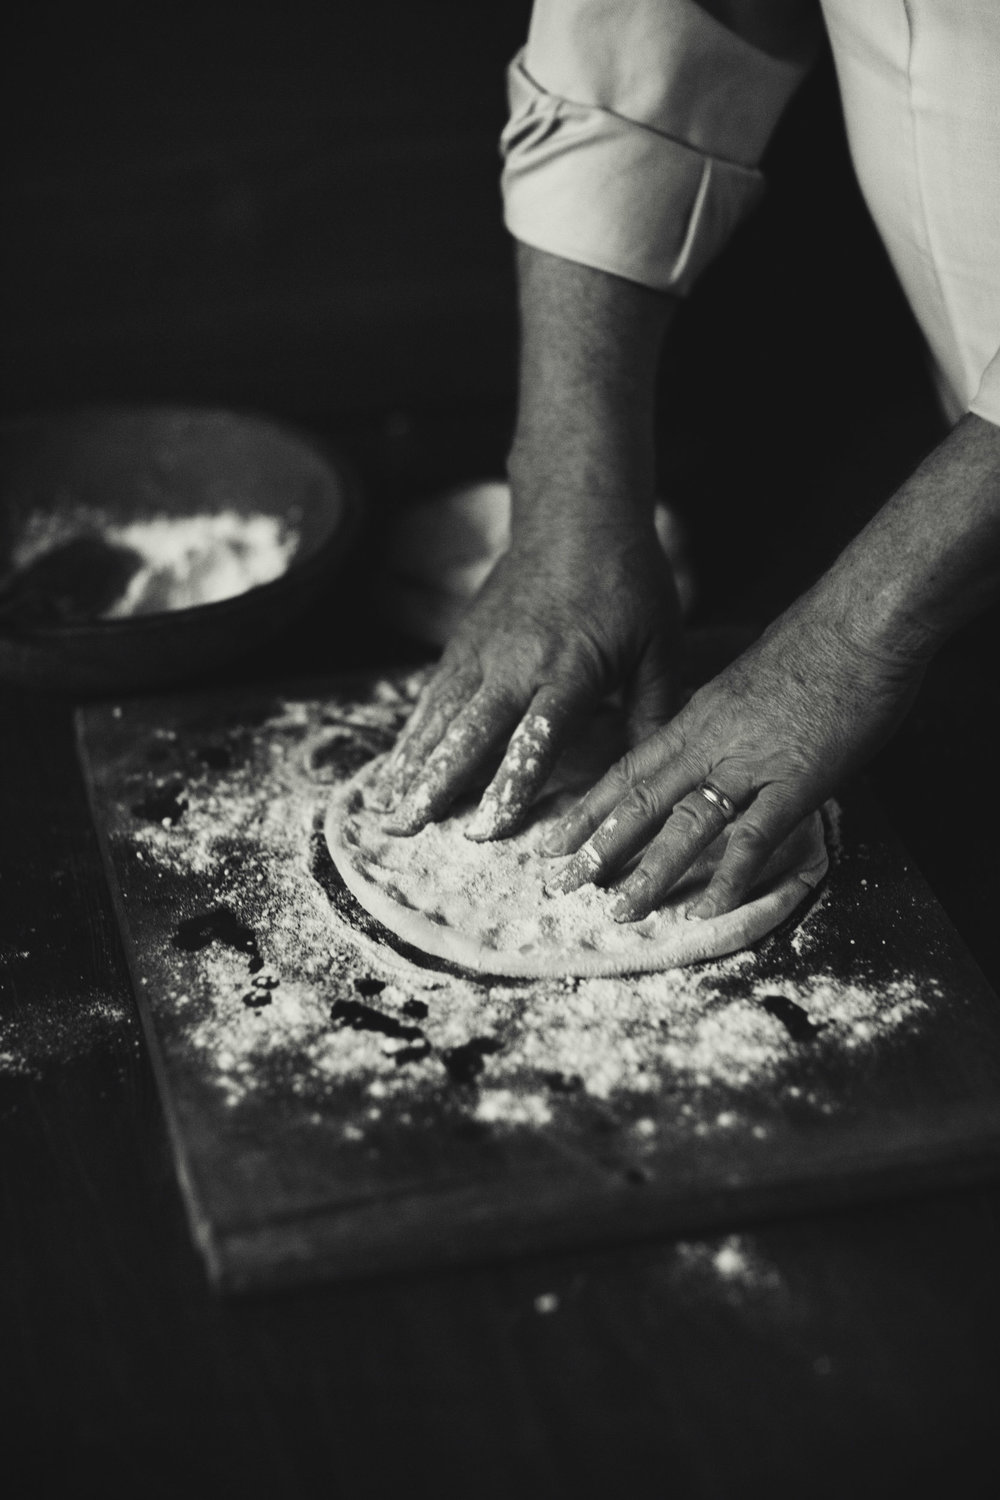 Hand tossed traditional pizza dough with flour